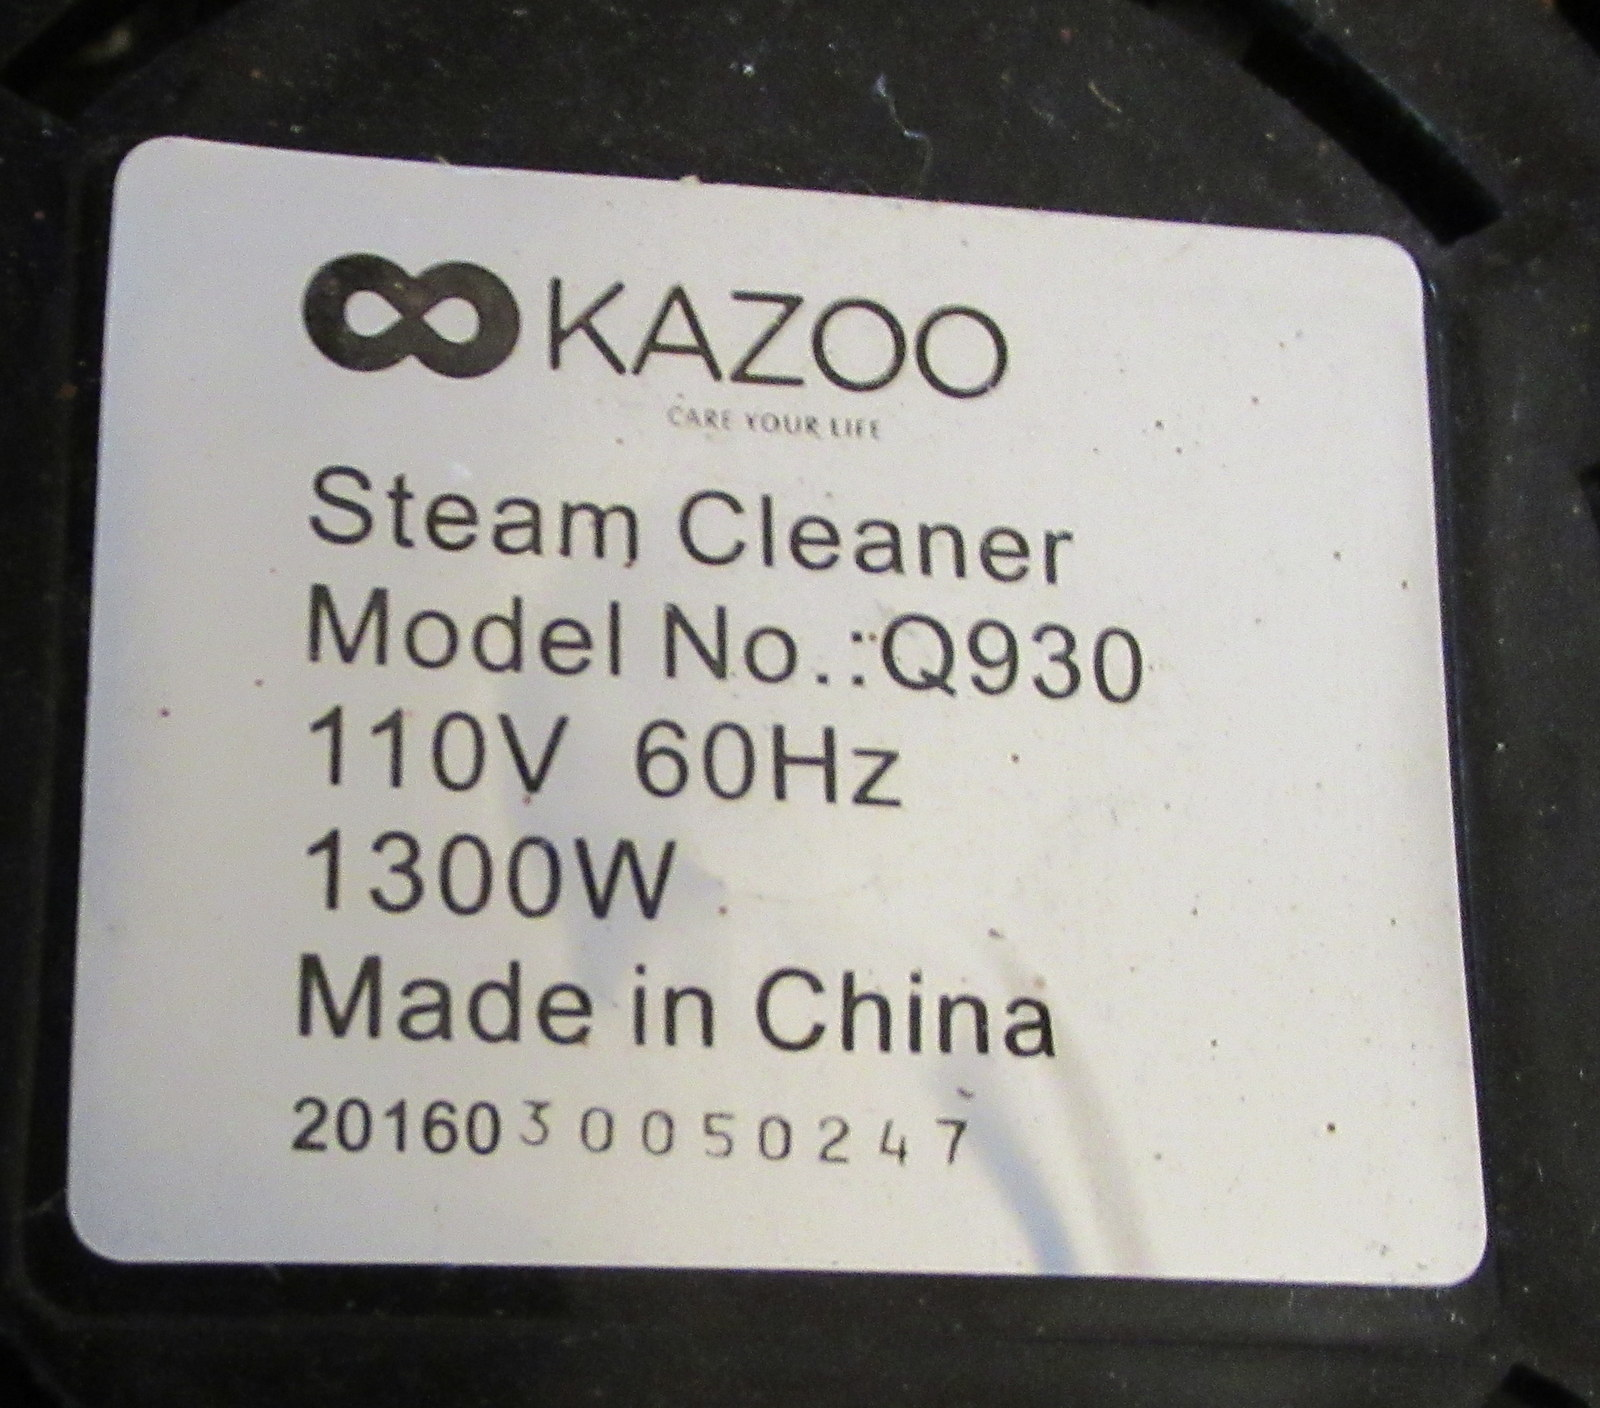 Lot 222 - Kazoo Q930 Steam Cleaner & Accessories